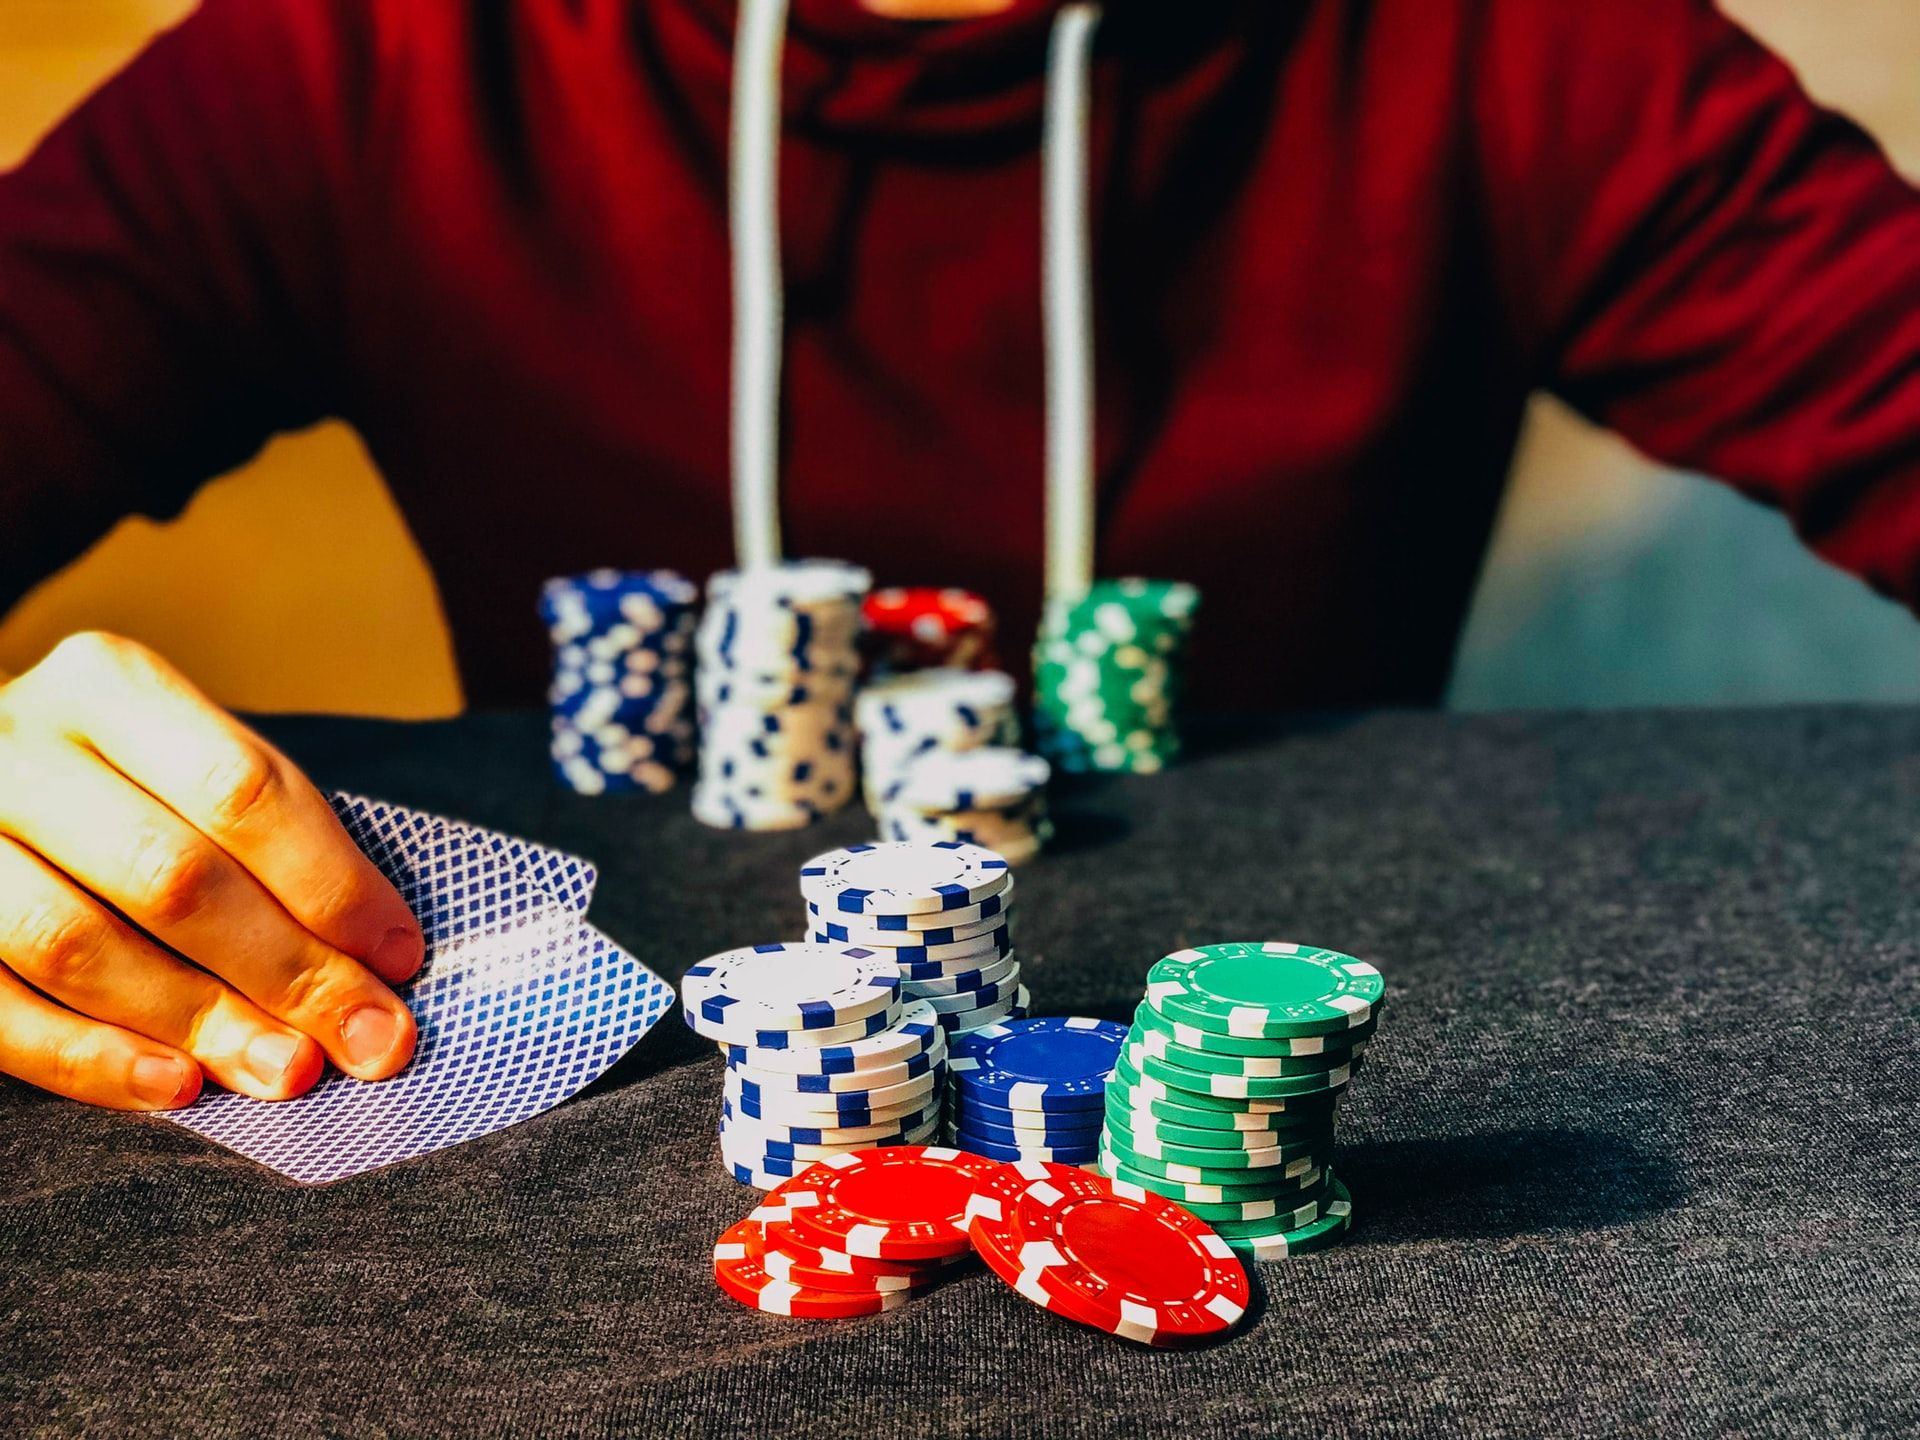 Strategies For Low Stakes Casinos